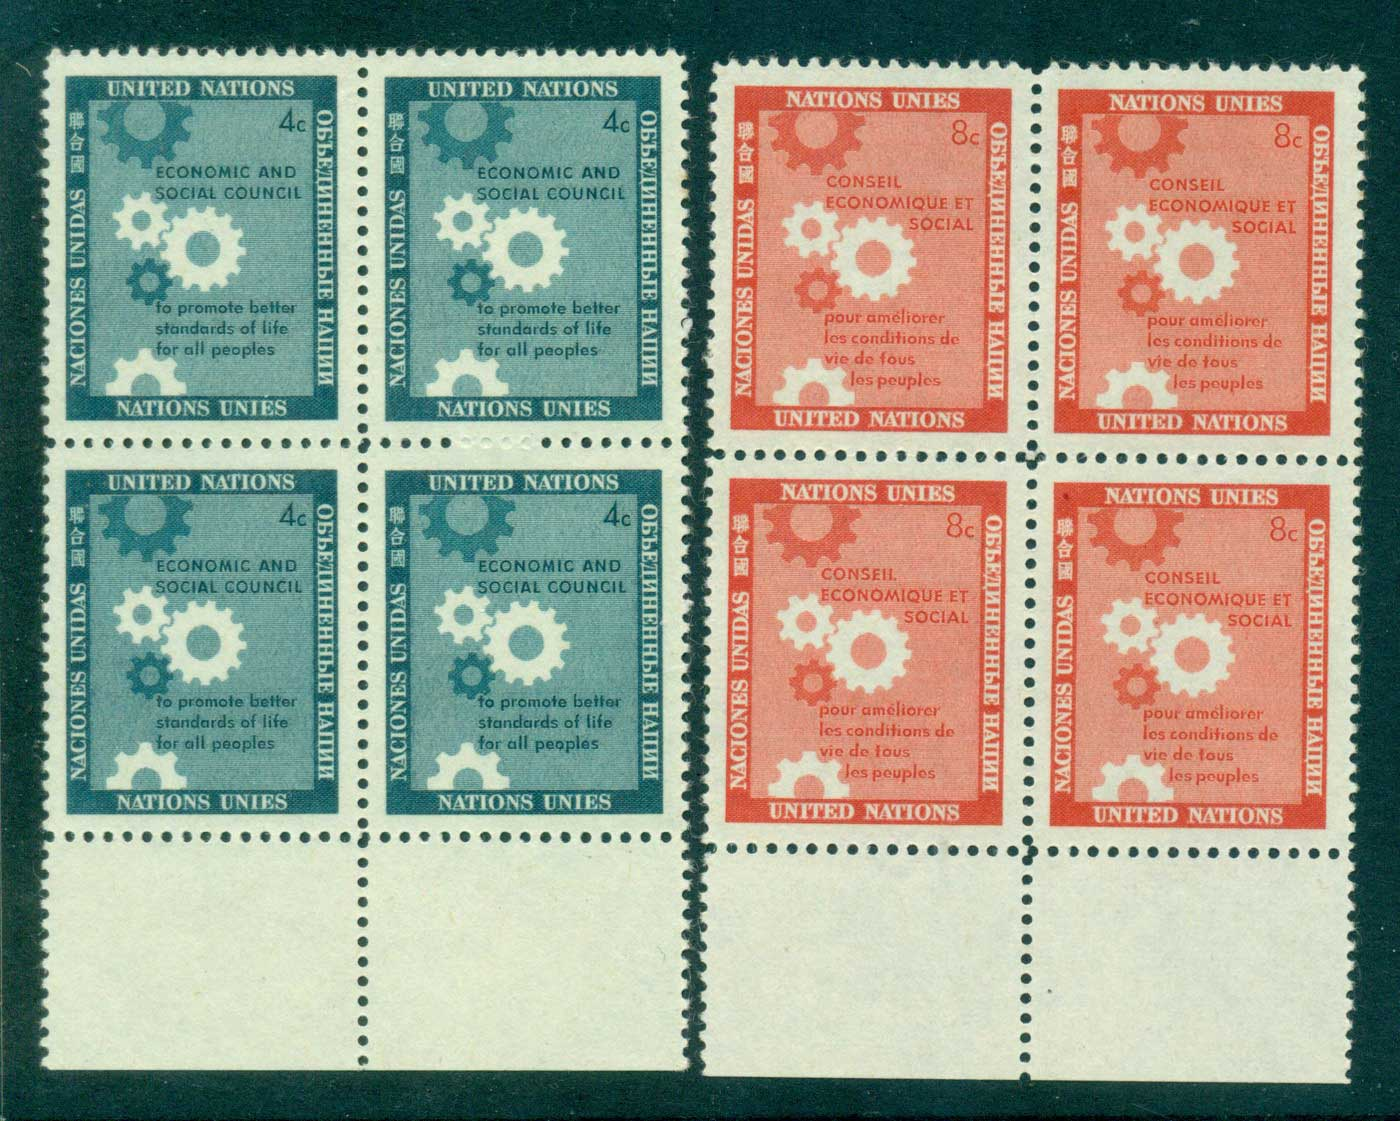 UN New York 1957 Honouring the Economic & Social Council Blk 4 MUH lot40901